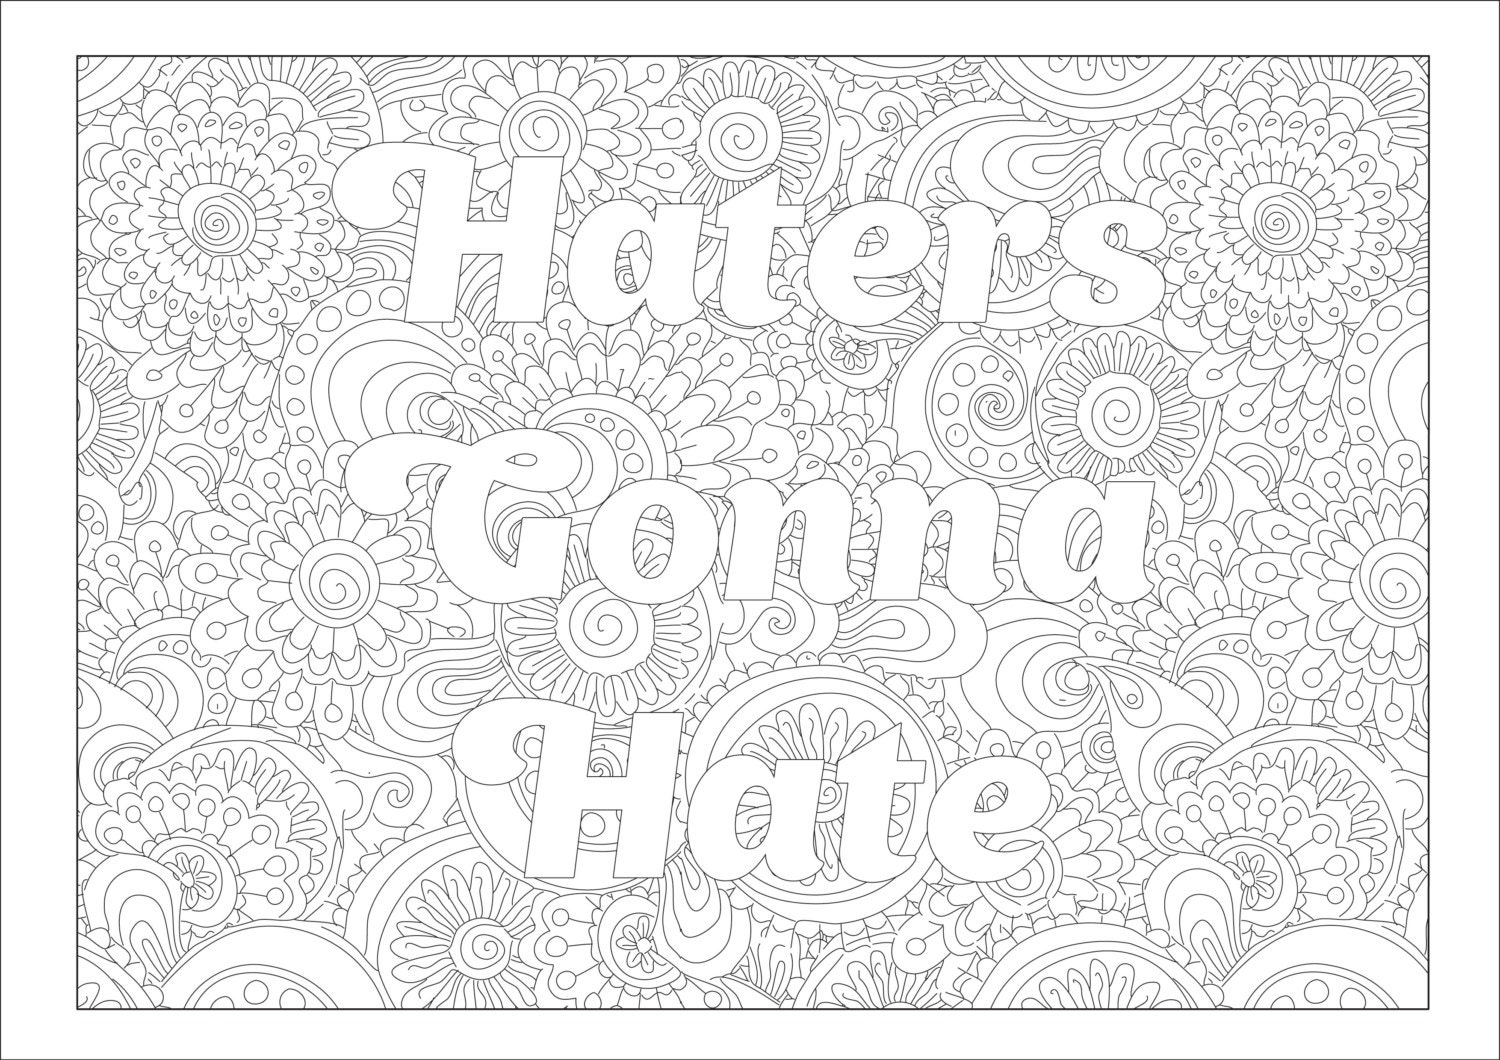 Swear coloring page Haters gonna hate with flower